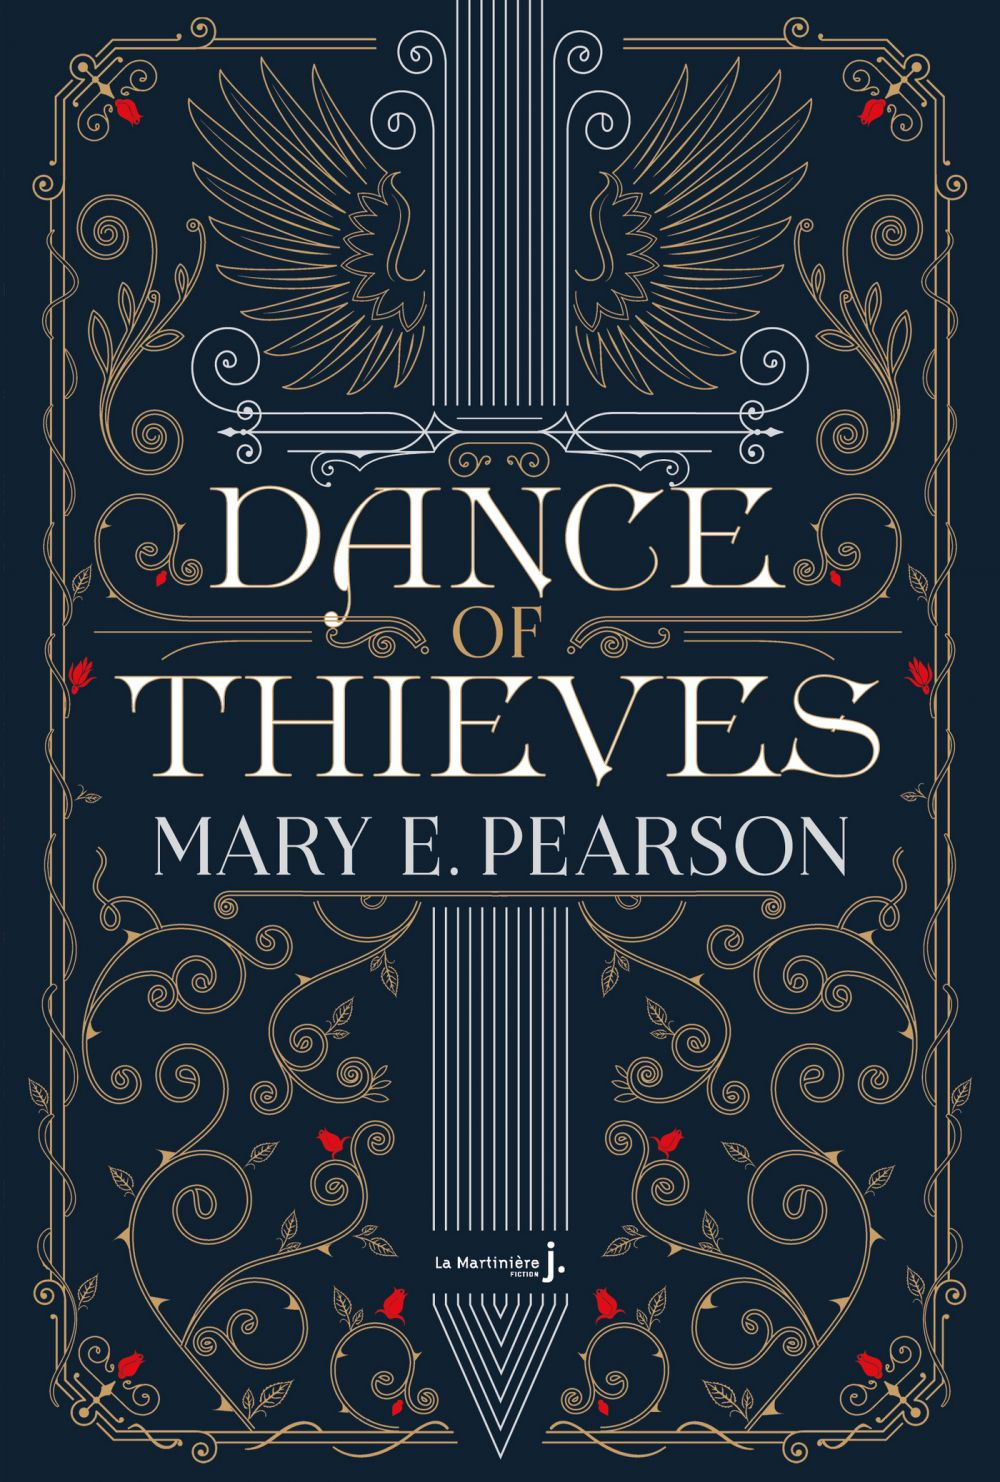 Dance of thieves |